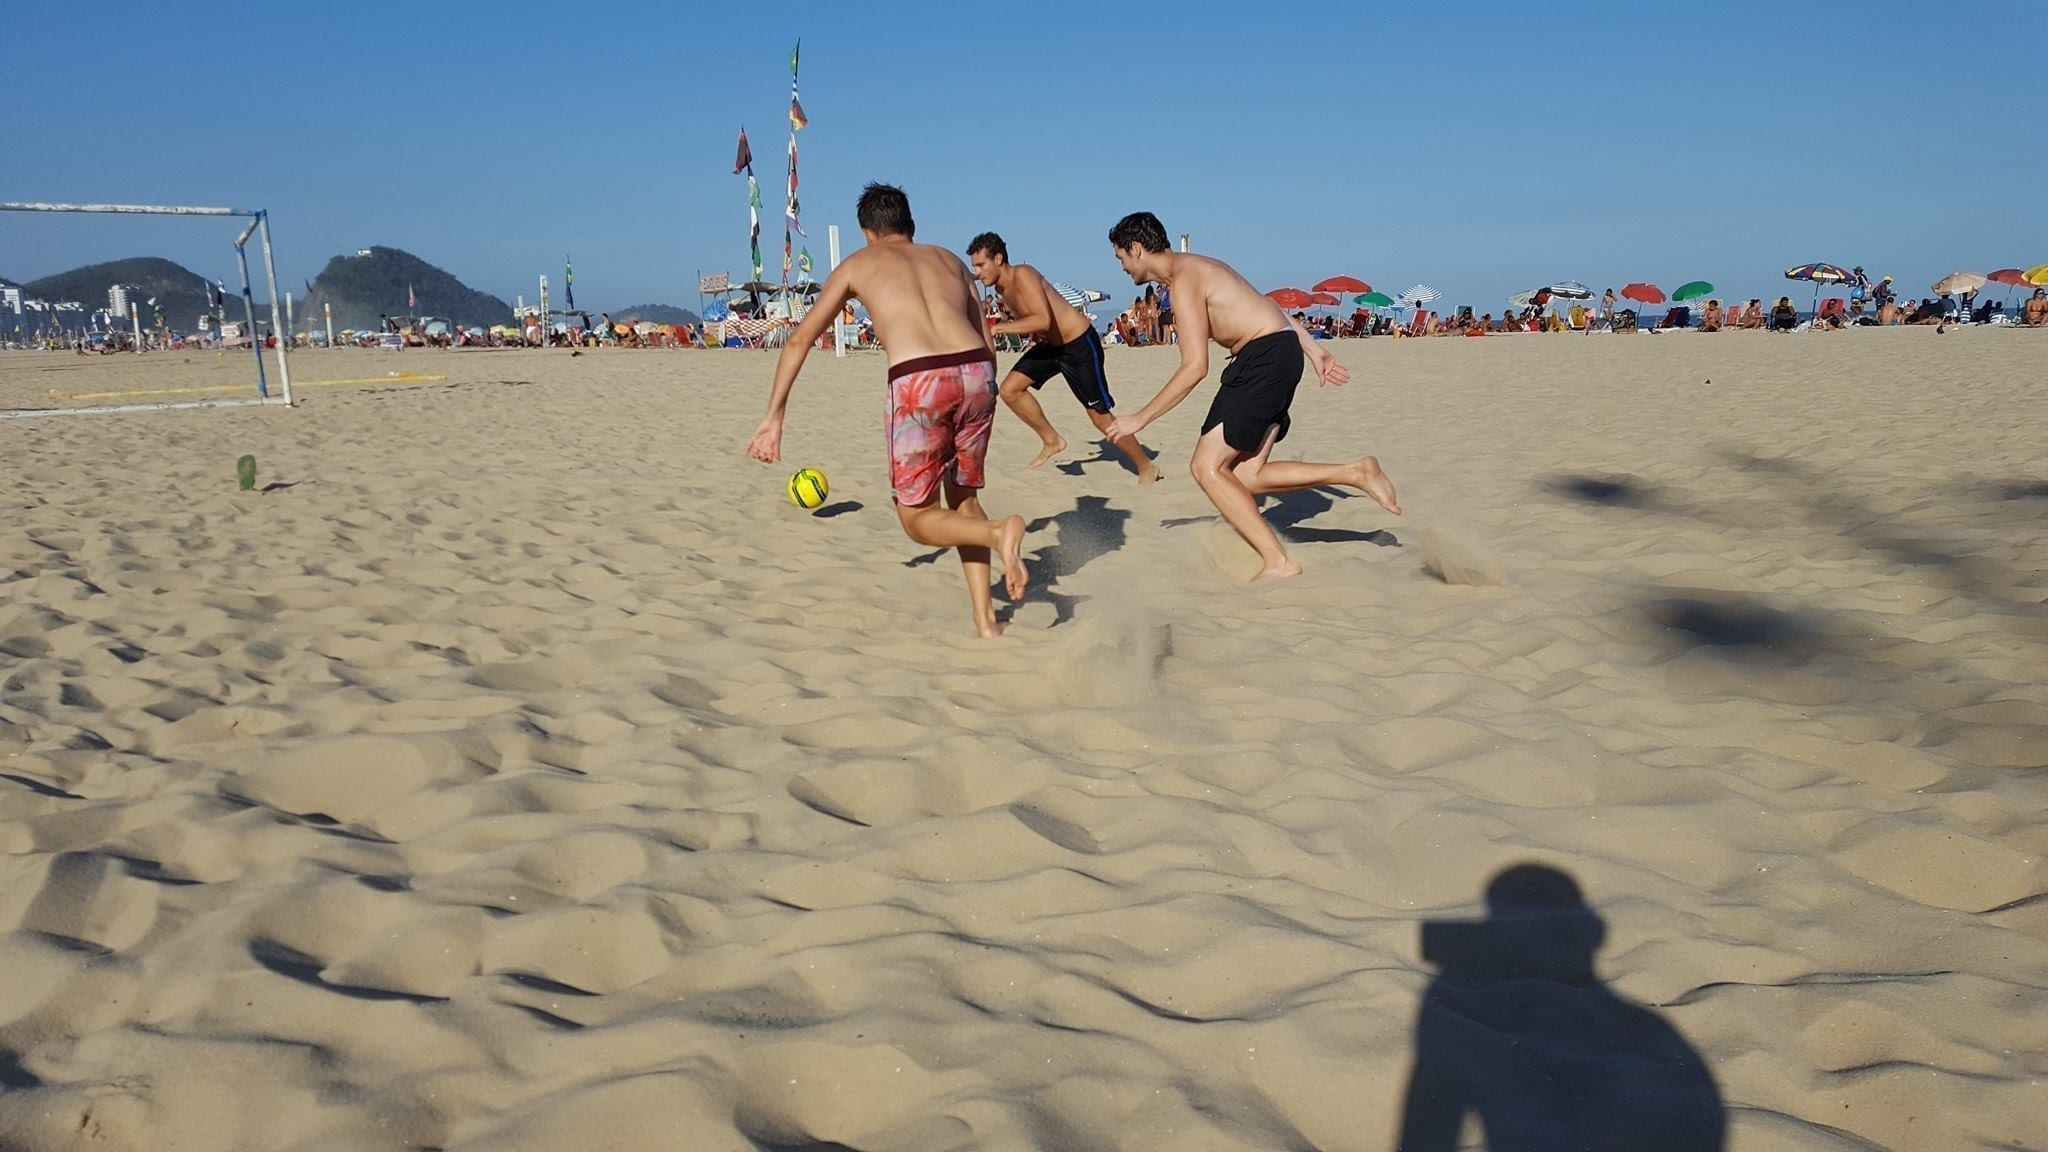 Beach Soccer in Copacabana. Students playing football in Copacabana Beach.